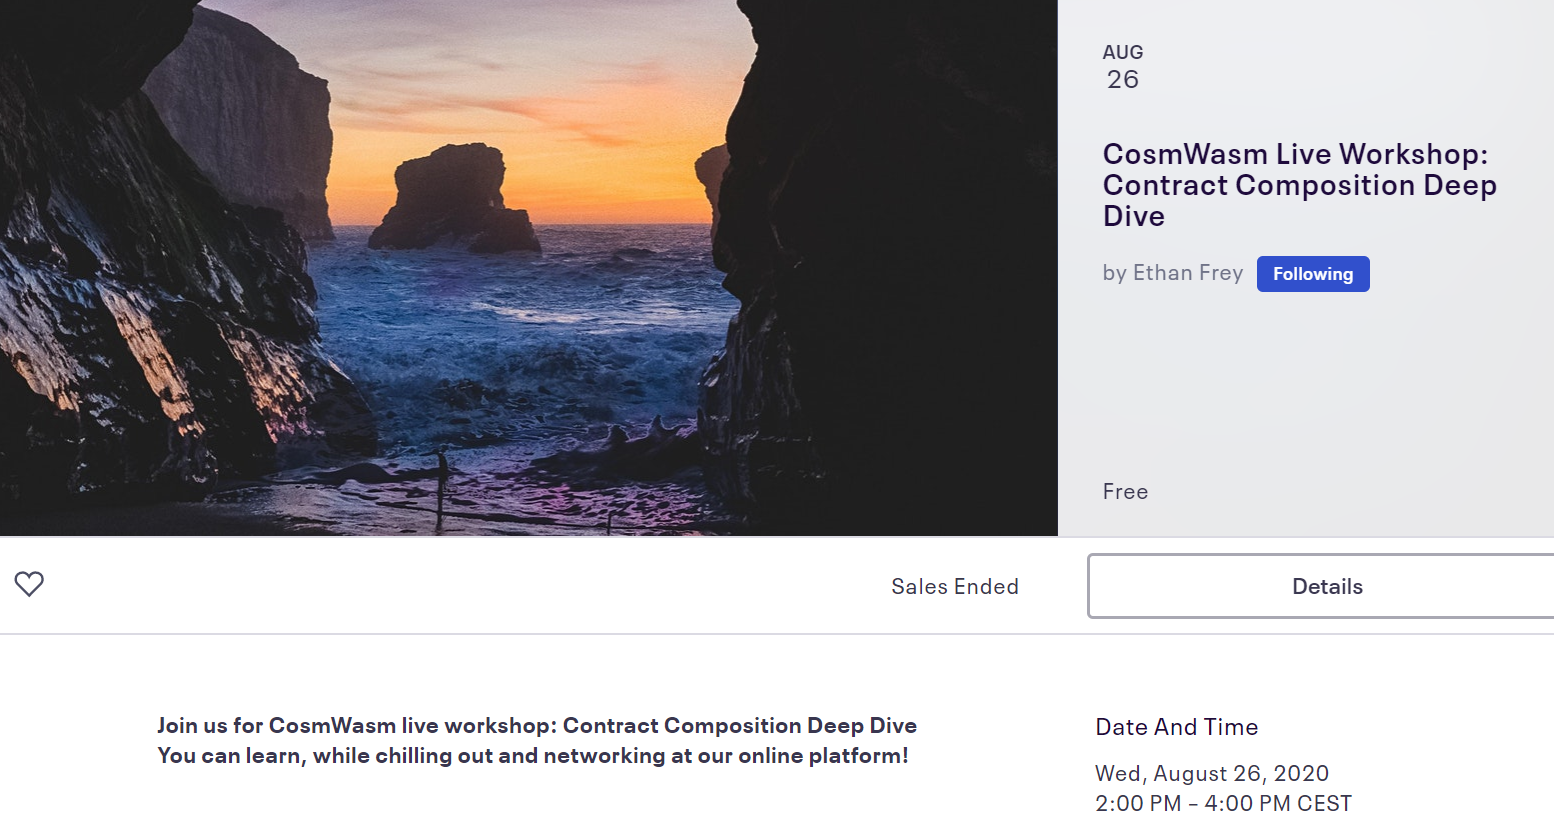 CosmWasm Live Workshop_ Contract Composition Deep Dive Tickets, Wed, Aug 26, 2020 at 2_00 PM _ Eventbrite - Google Chrome 28_08_2020 18_22_21 (3)